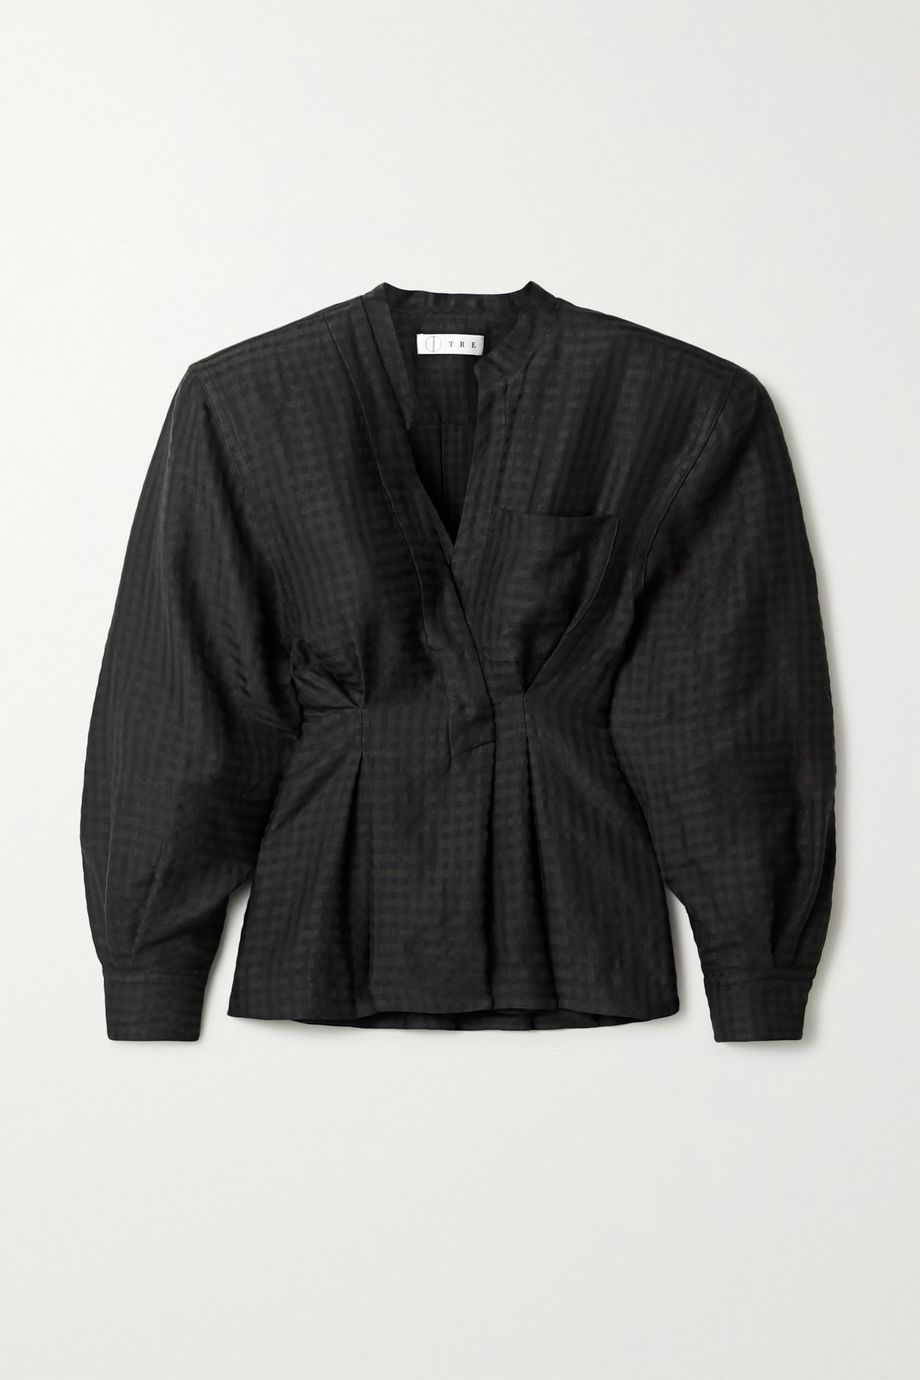 TRE by Natalie Ratabesi Checked twill blouse